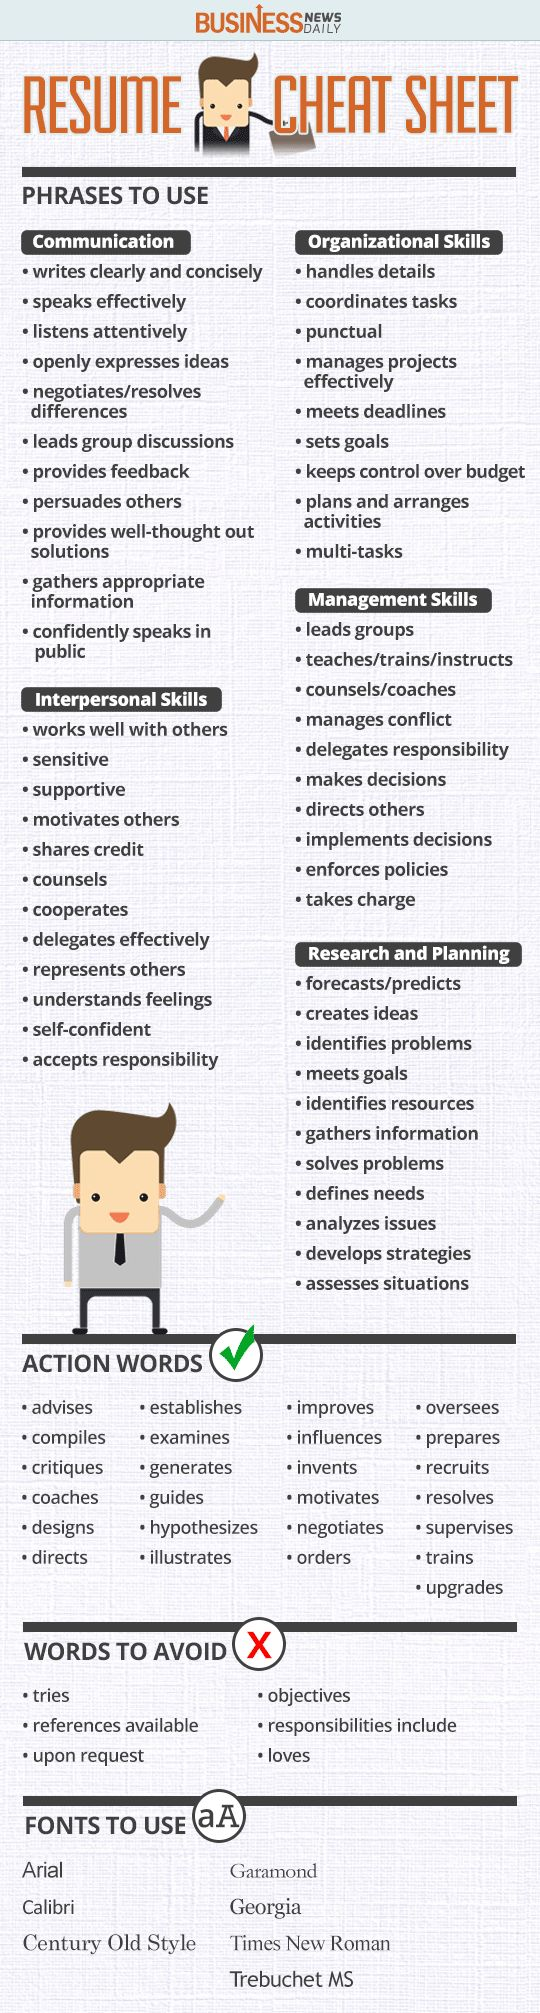 Opposenewapstandardsus  Remarkable  Ideas About Resume On Pinterest  Cv Format Resume Cv And  With Extraordinary Resume Cheat Sheet Infographic Andrews Almost Done With A Complete Unit On Employment Which With Amazing Entry Level Analyst Resume Also Resume Career Objective Examples In Addition Resume Writer Nyc And Information Technology Manager Resume As Well As Empty Resume Additionally Strong Objective For Resume From Pinterestcom With Opposenewapstandardsus  Extraordinary  Ideas About Resume On Pinterest  Cv Format Resume Cv And  With Amazing Resume Cheat Sheet Infographic Andrews Almost Done With A Complete Unit On Employment Which And Remarkable Entry Level Analyst Resume Also Resume Career Objective Examples In Addition Resume Writer Nyc From Pinterestcom